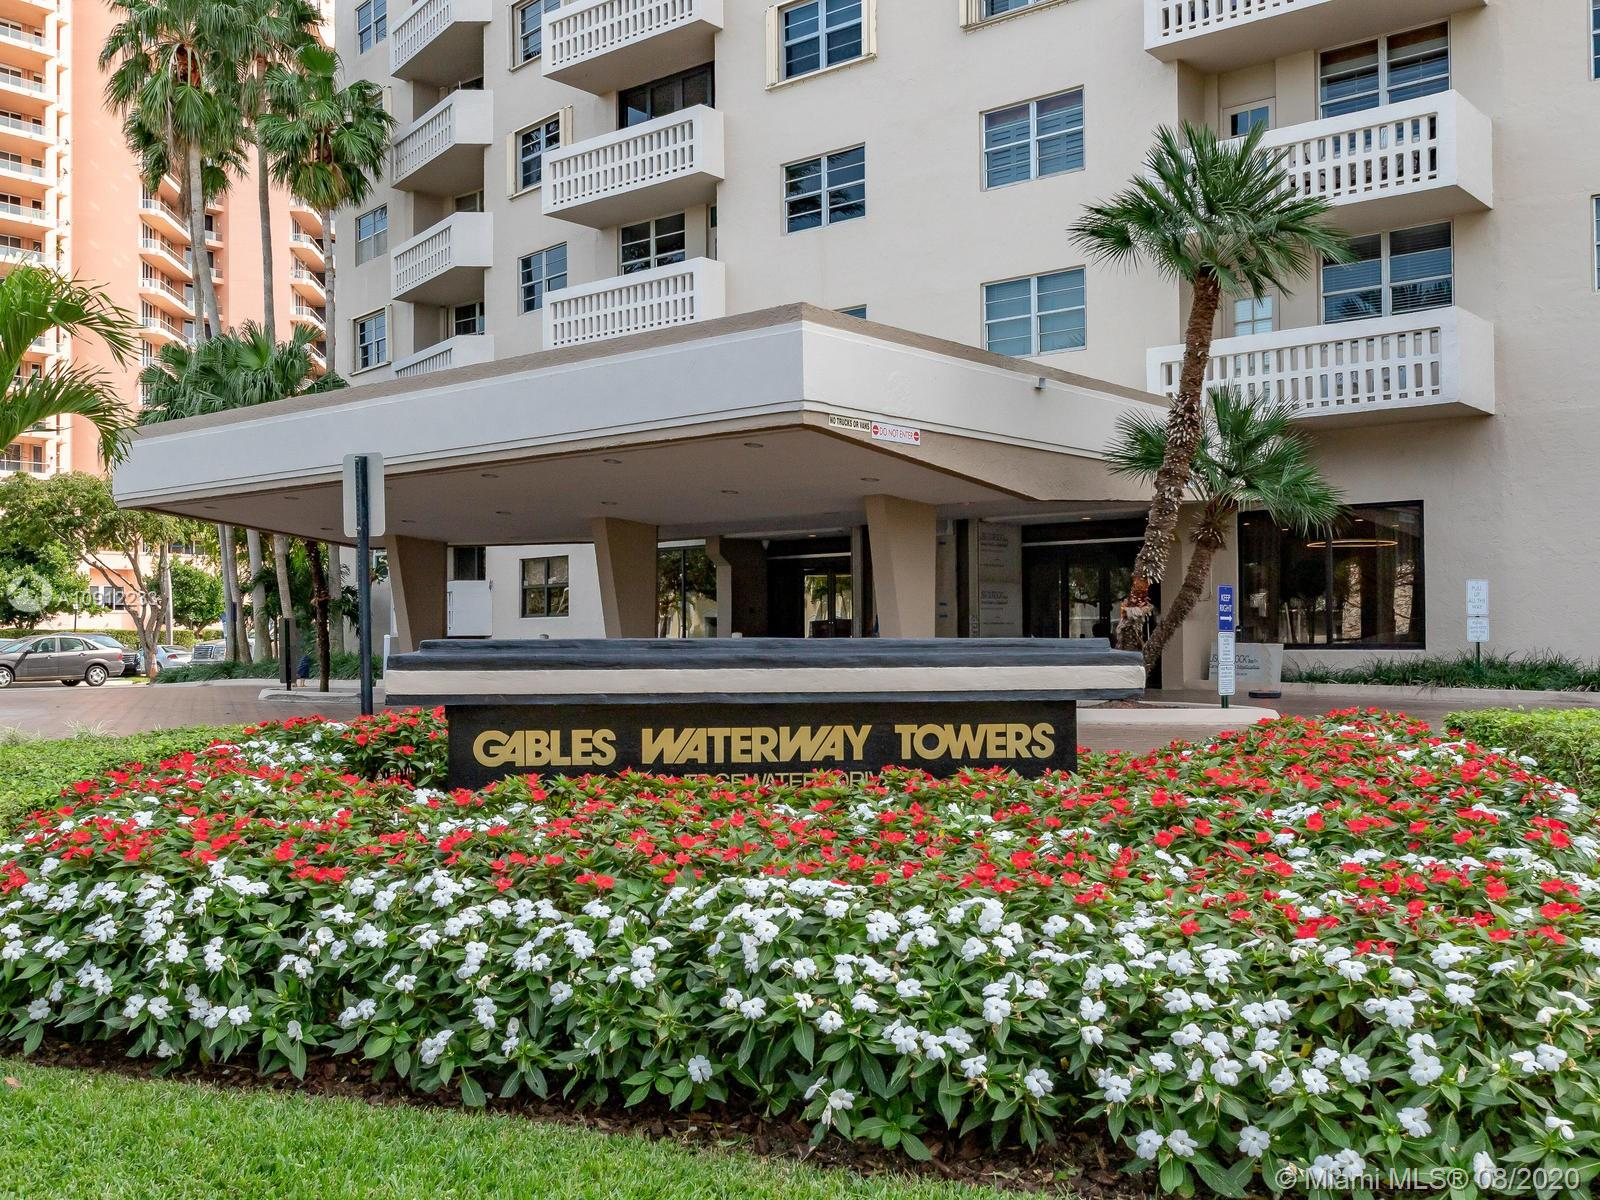 Newly reduced! 1/1.5 all updated unit in Gables Waterway Towers.  Beautiful waterfront bldg has just completed over $8M in renovations. Unit renovated with quality materials & impeccable taste.  New high impact sliding door to balcony, sound-proof wall, neutral colors, crown moldings, granite & wood kitchen w/cabinets on both sides & pull out drawers, new baths(tub not changed) ceramic flrs, ample closet space, balcony on shady side of bldg. Serene pool area by canal & docks, state of art gym, comm. rm, valet, consierge, manager on site, & more! 5 mins to South Miami, Grove, Gables, UM, A schools, parks, transportation & shopping.  Maintenance include a/c  & hot water elec.  Can't beat this building!!!